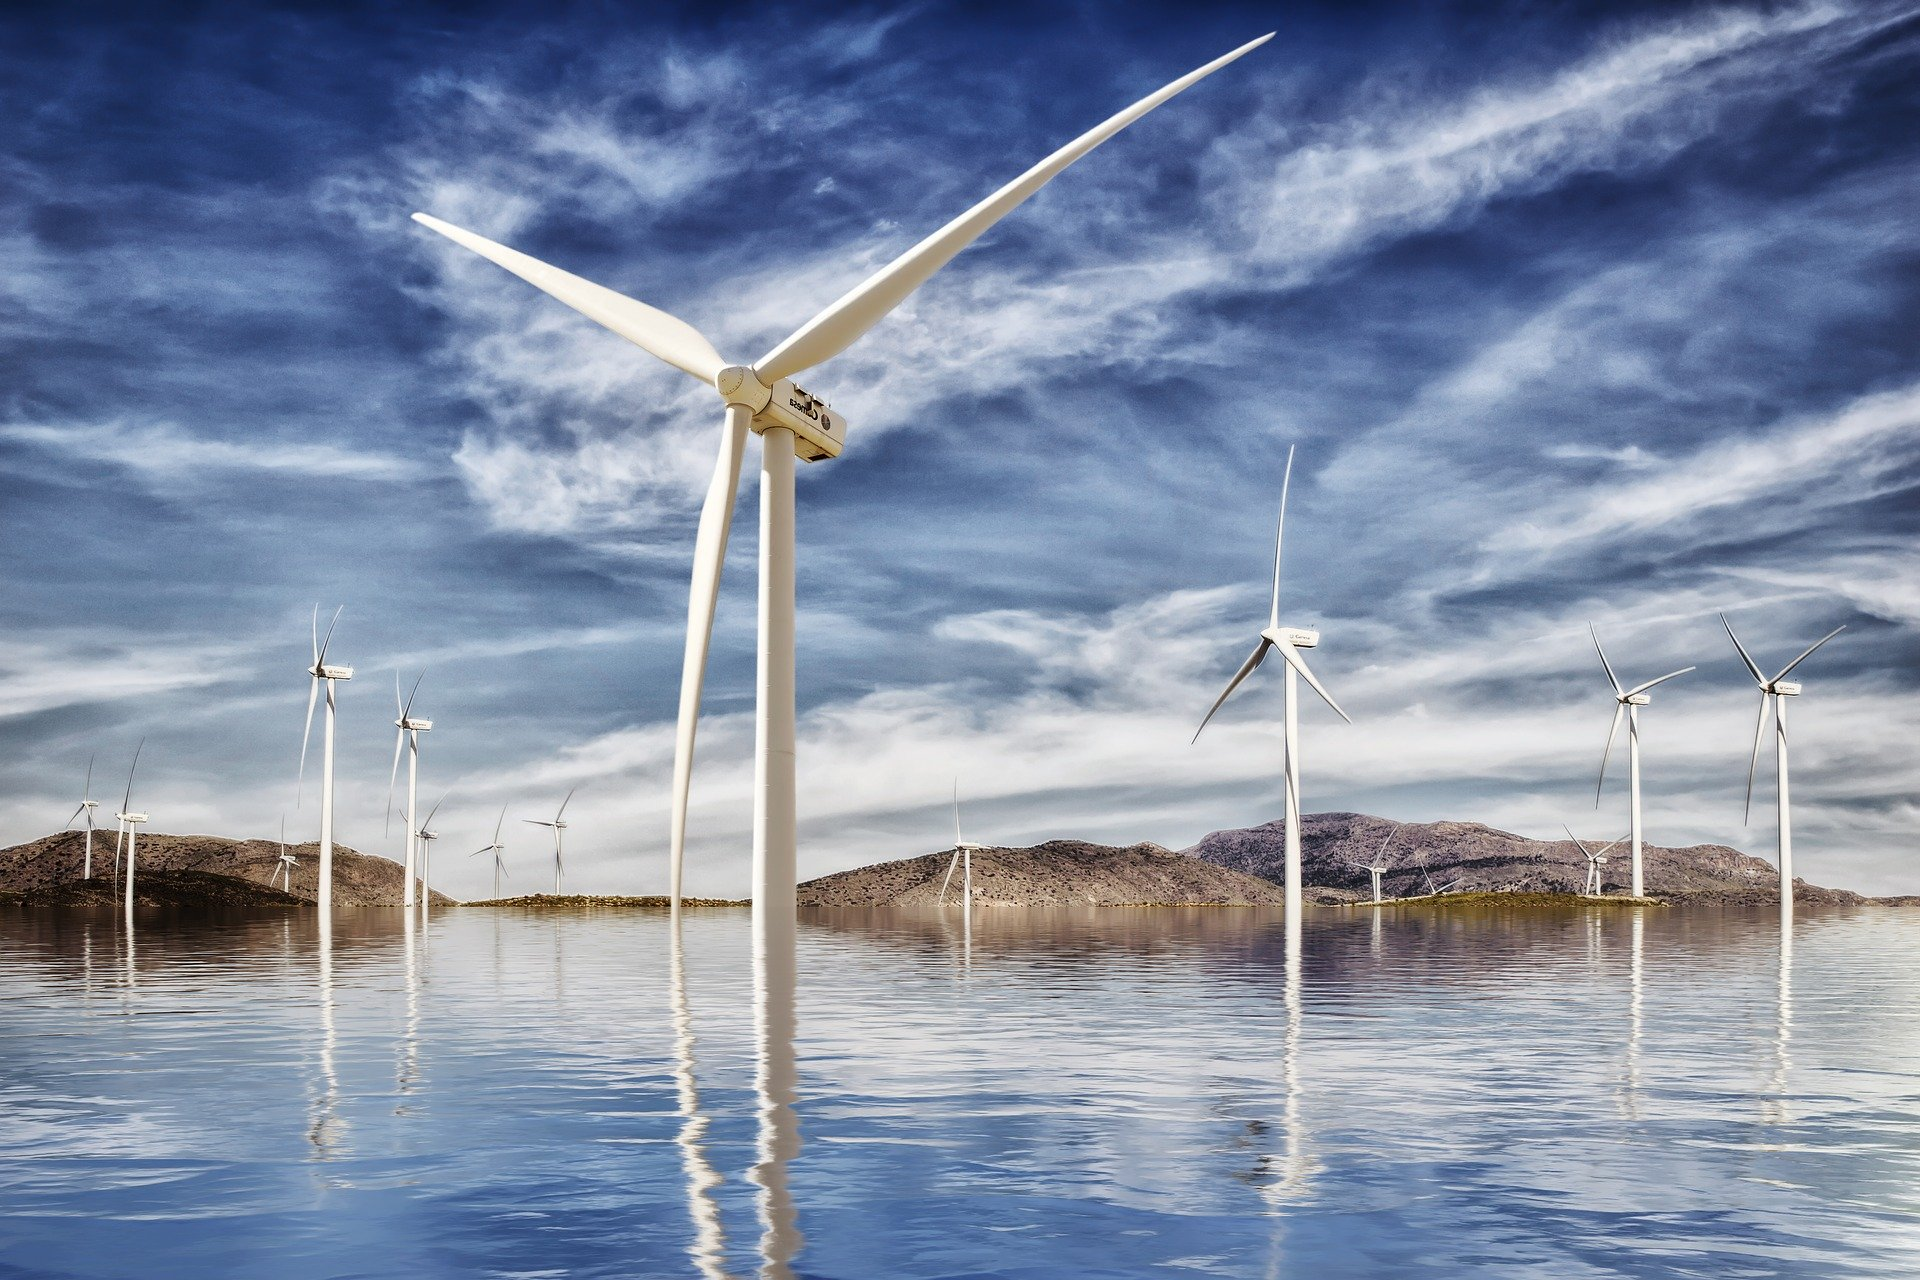 LED Lighting For Offshore Wind Farms